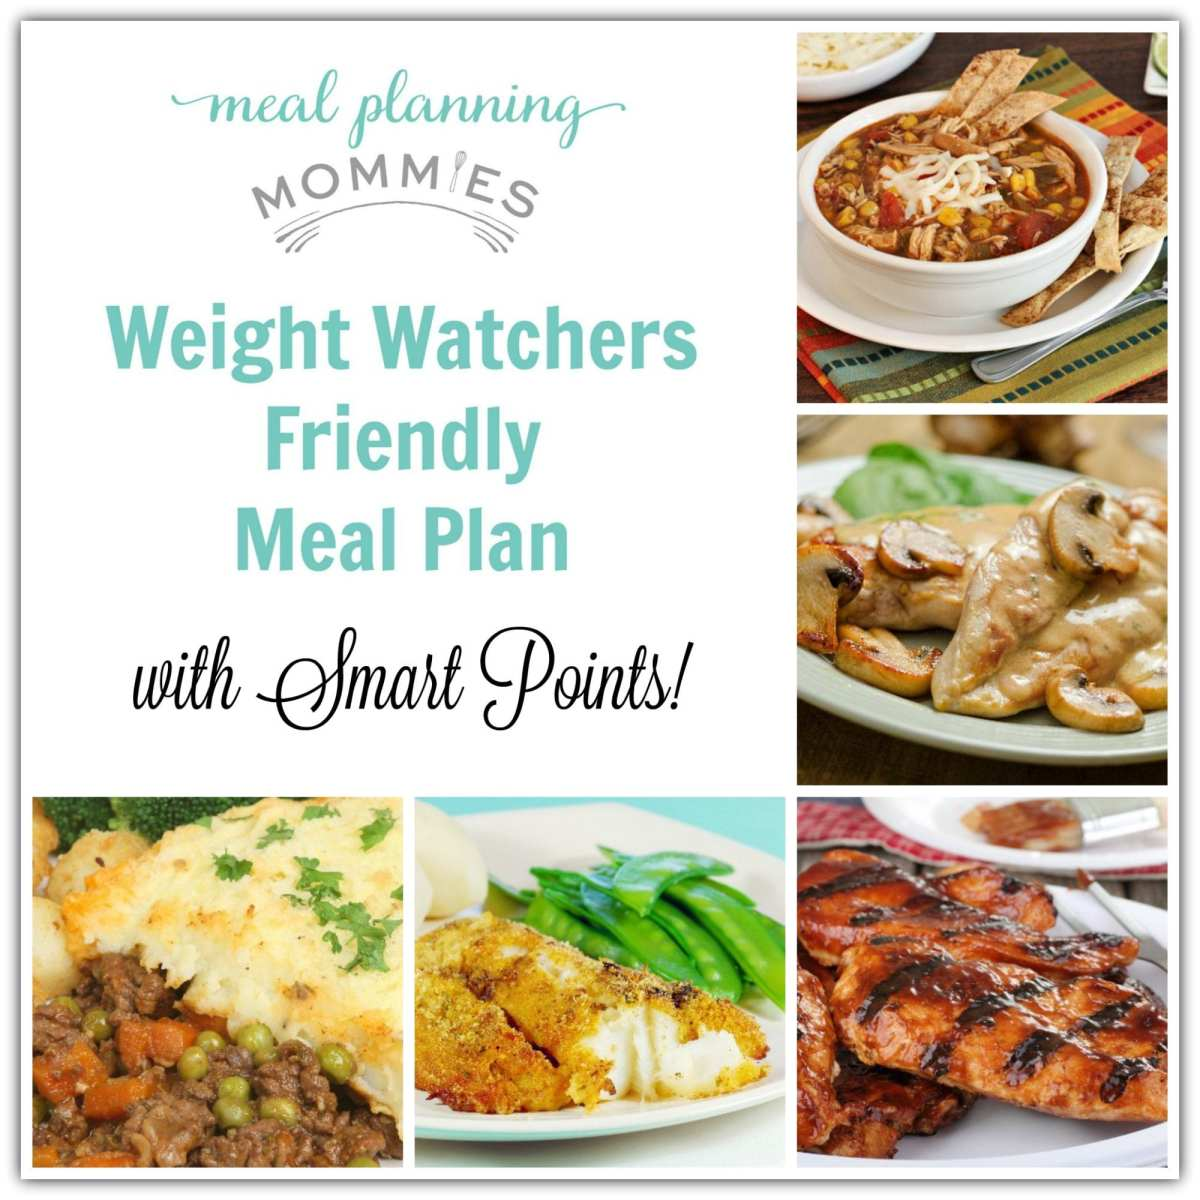 Weight Watcher Friendly Meal Plan with Smart Points #2